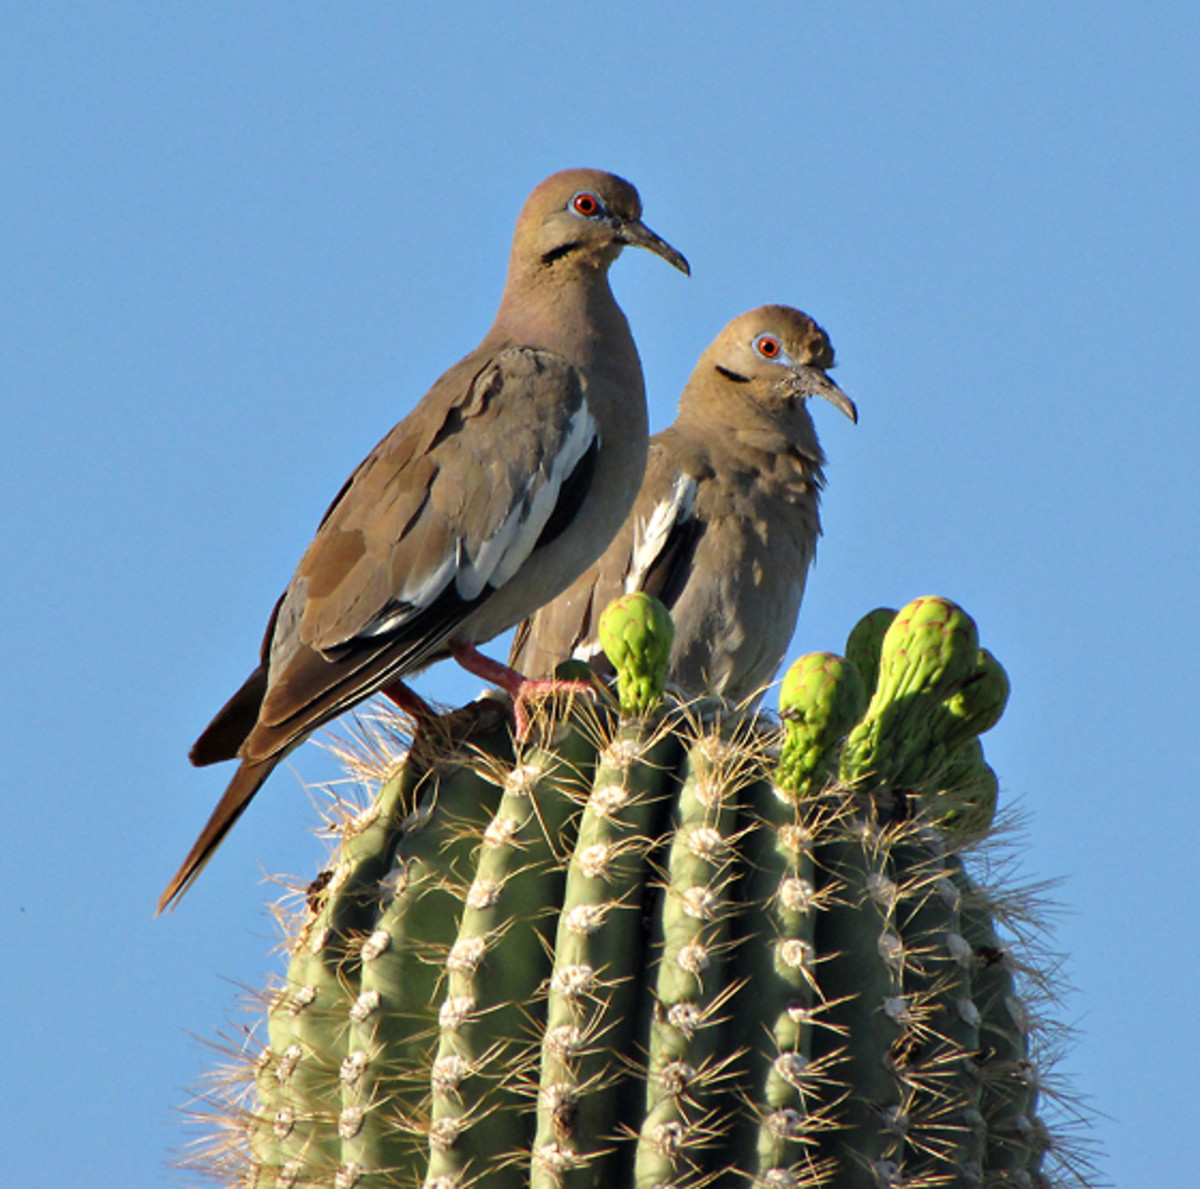 White-winged doves perching on on a cactus in Tucson, Arizona, USA